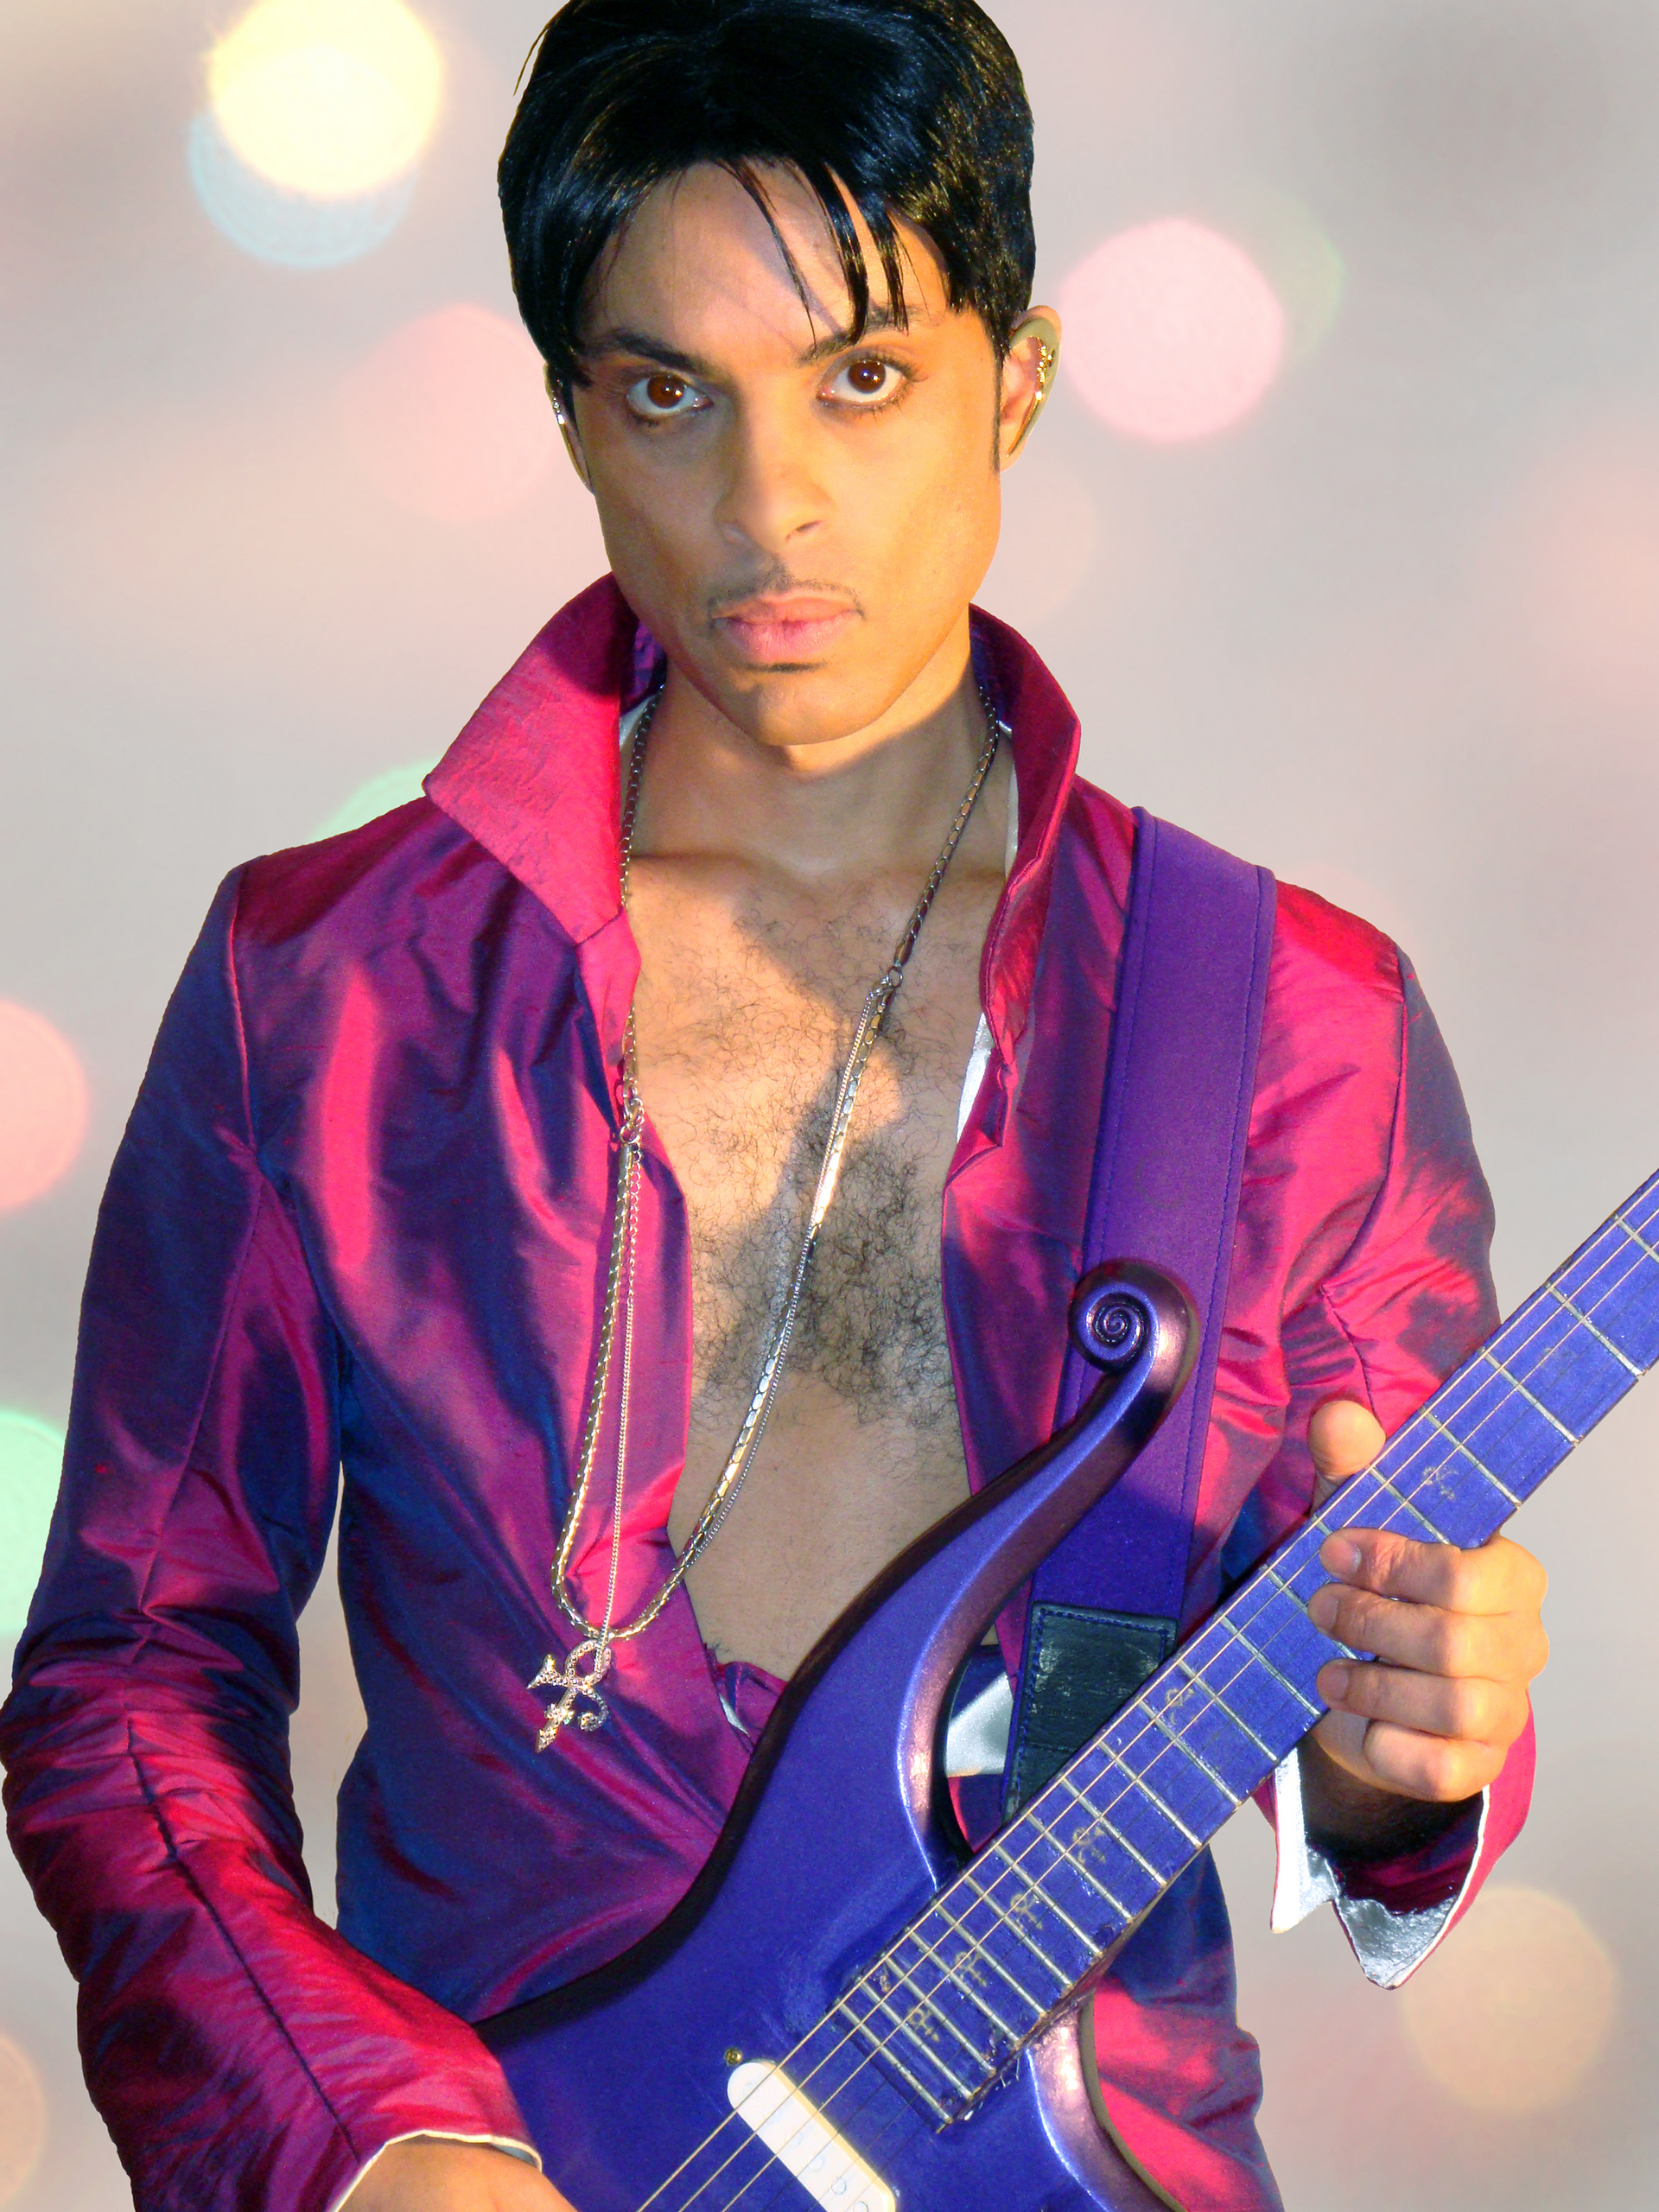 Who is this guy, looks like Prince